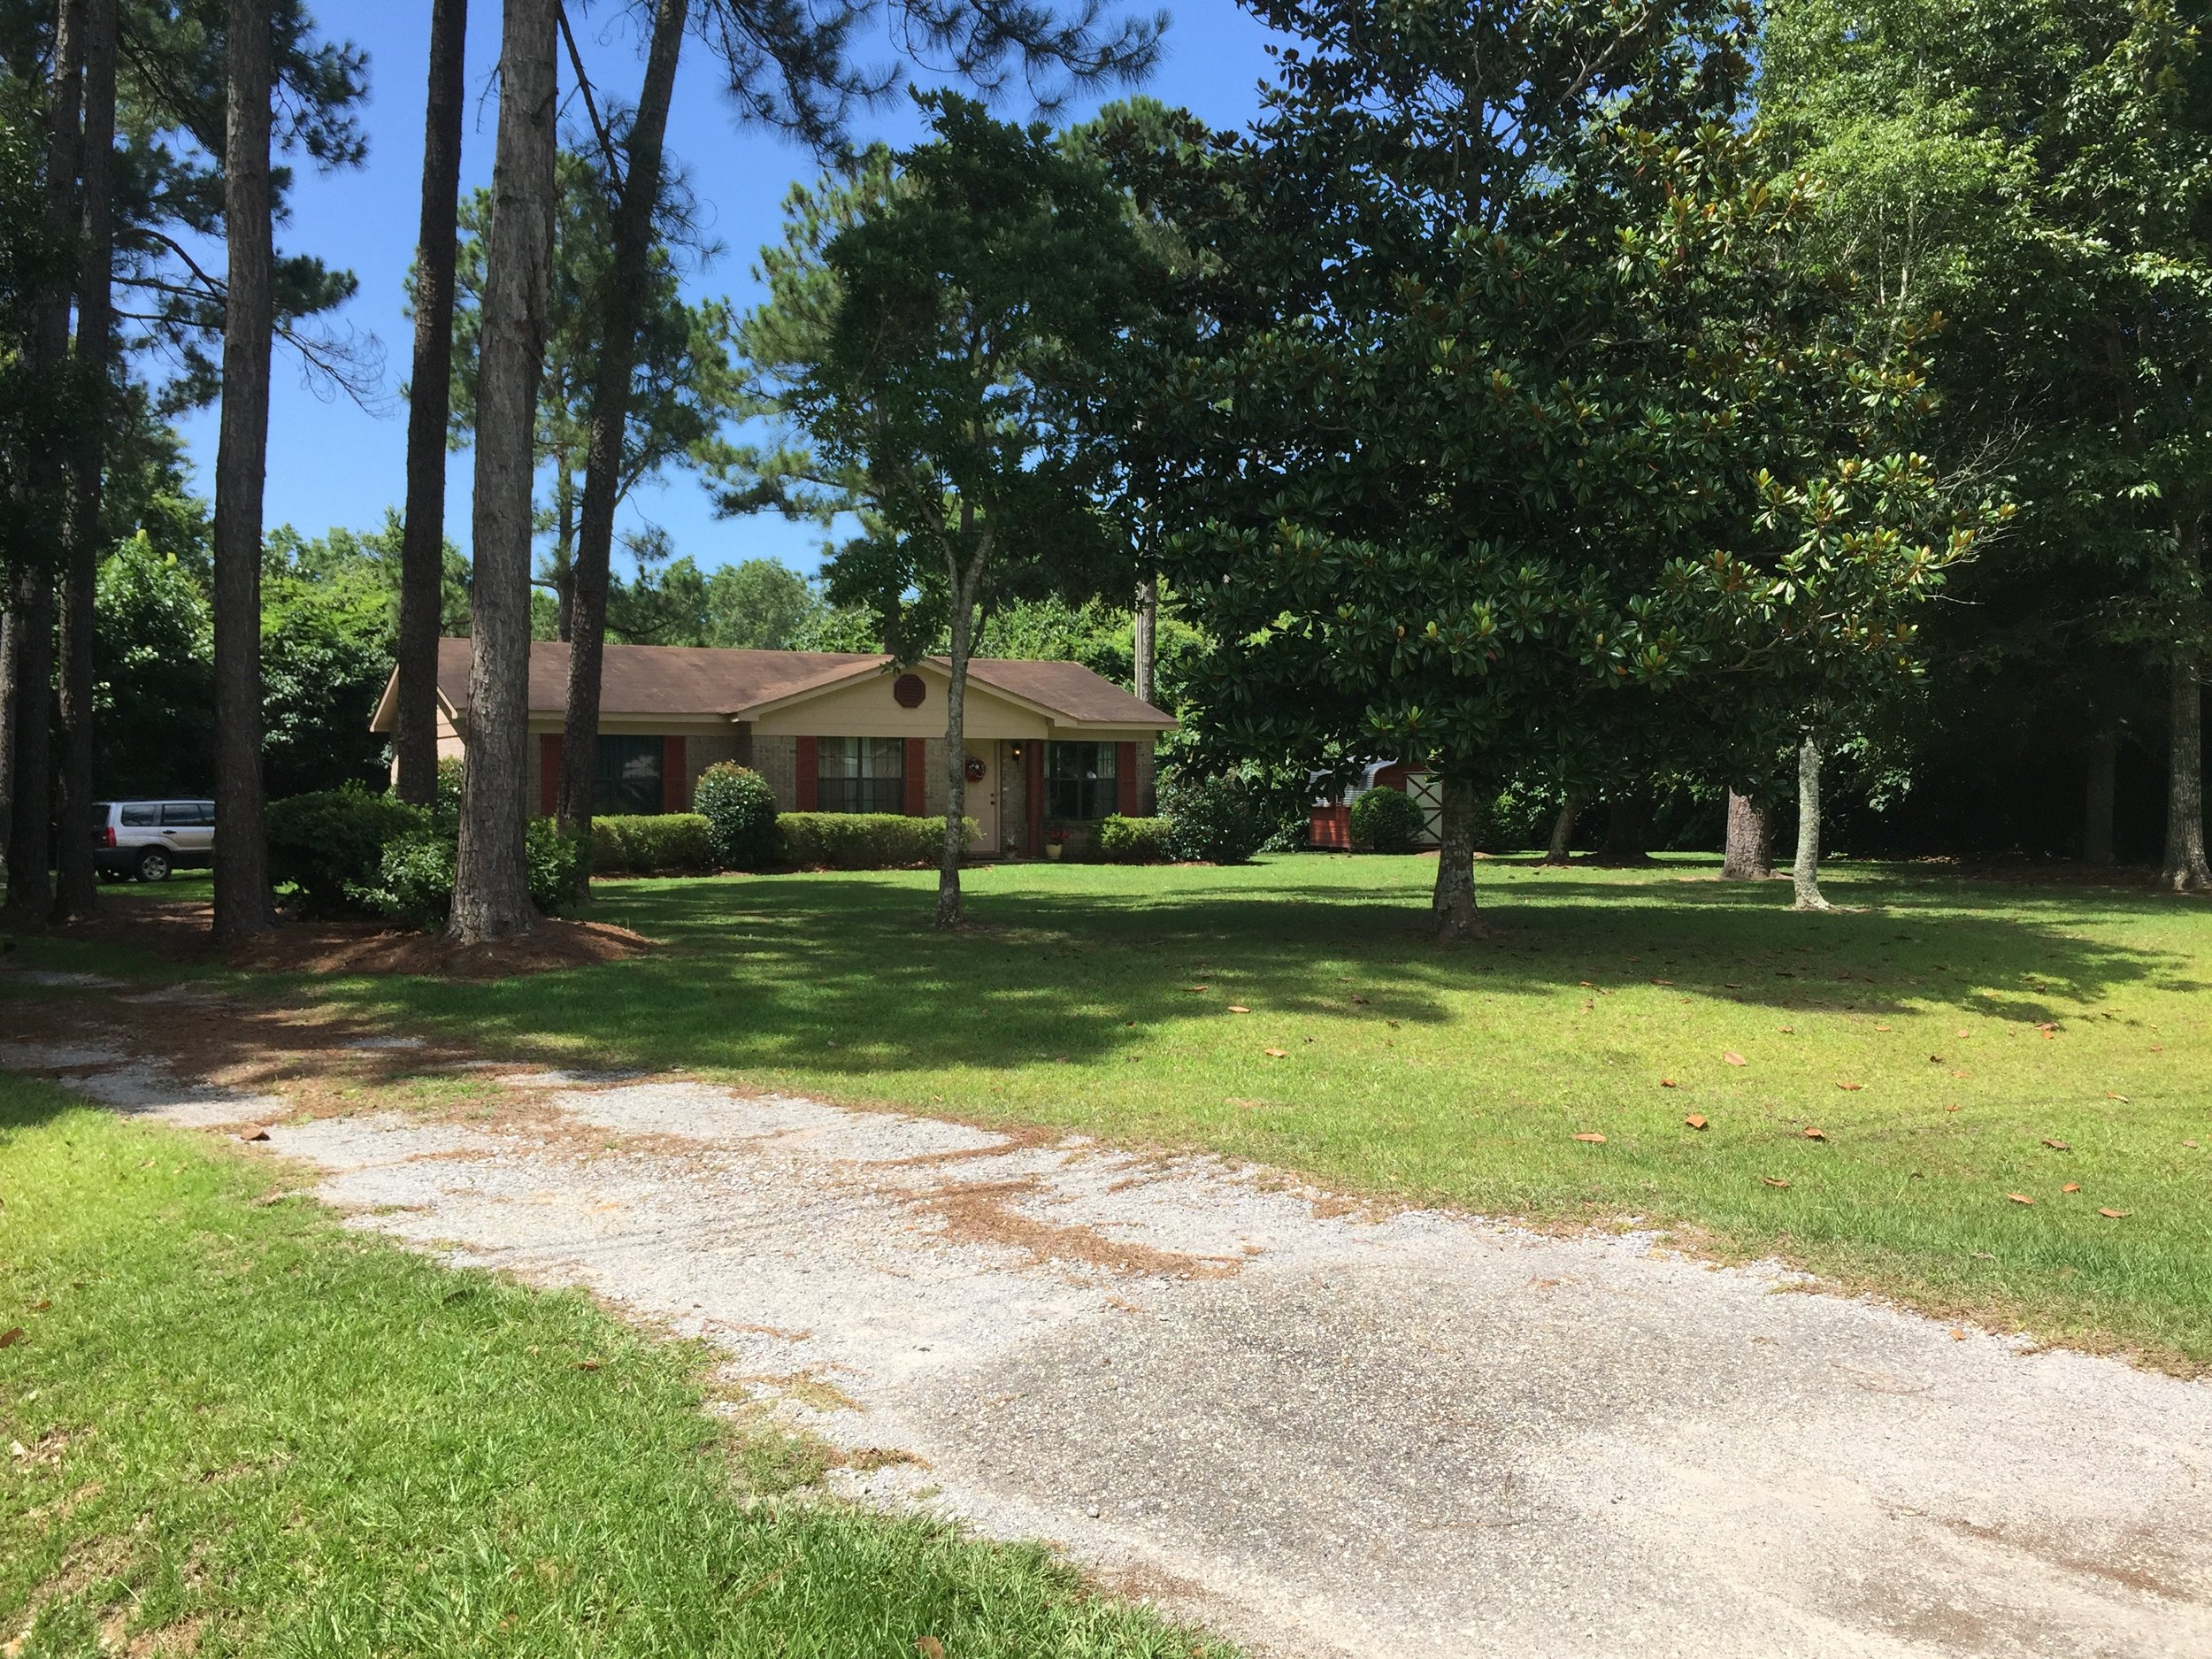 Papa's Cottage is a 2 bedroom, 1 bath home located in Fairhope, AL.